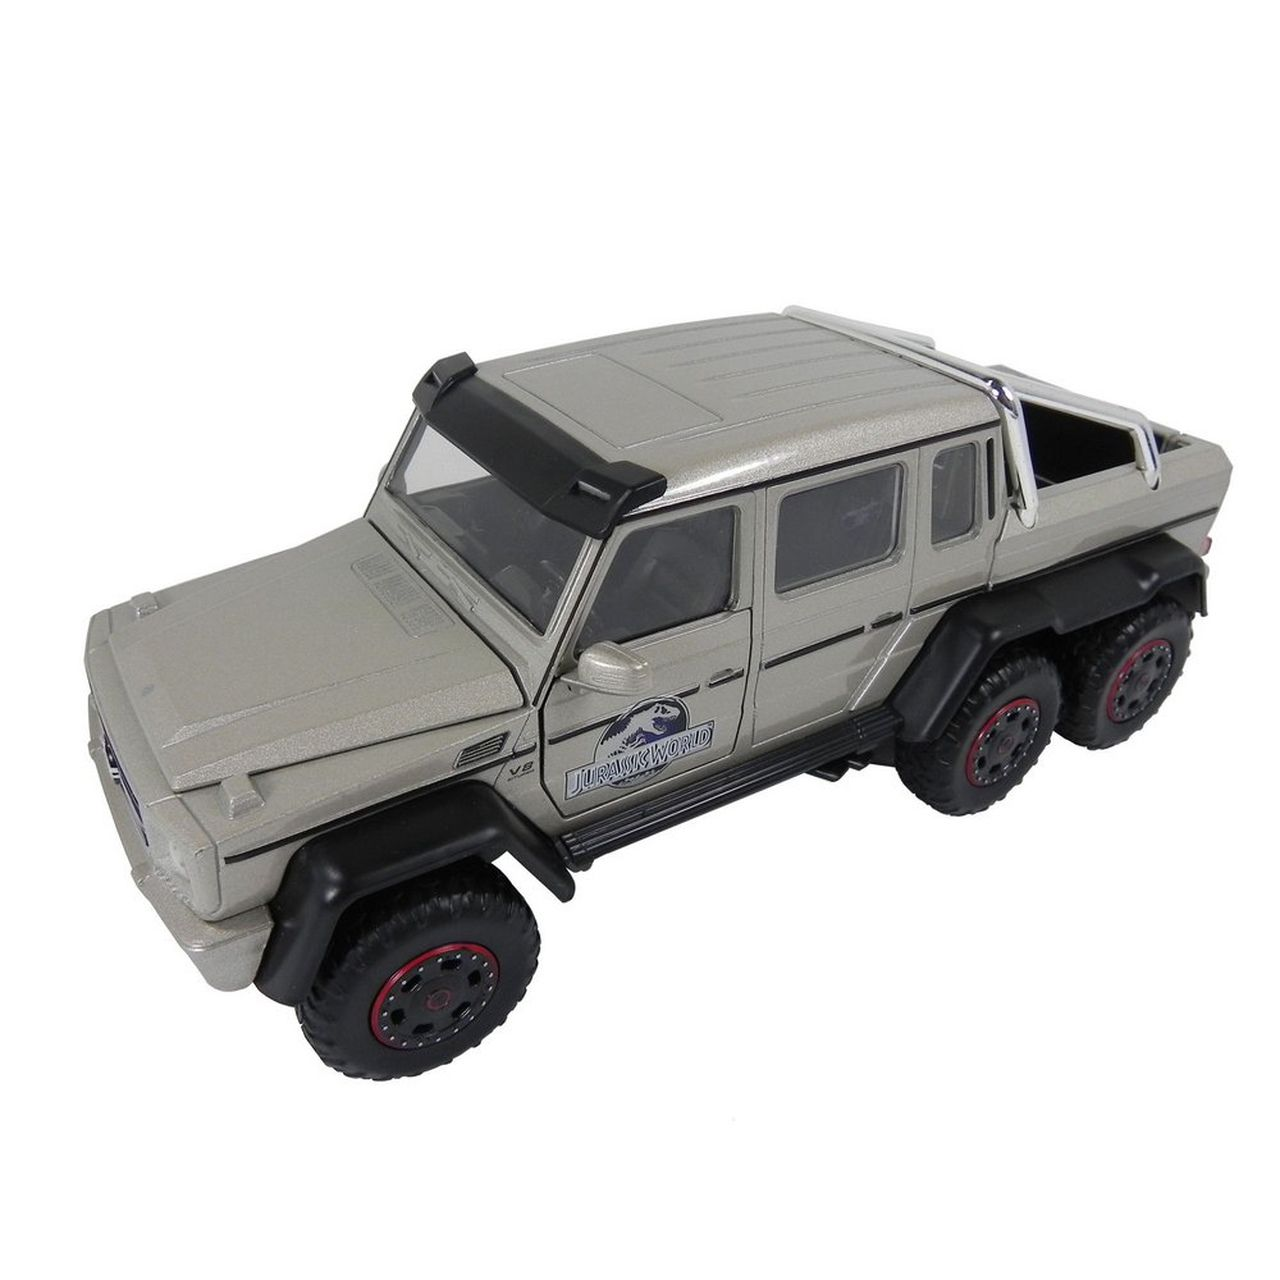 Miniatura Mercedes Benz Jurassic World (Escala 1/24) - Jada Toys